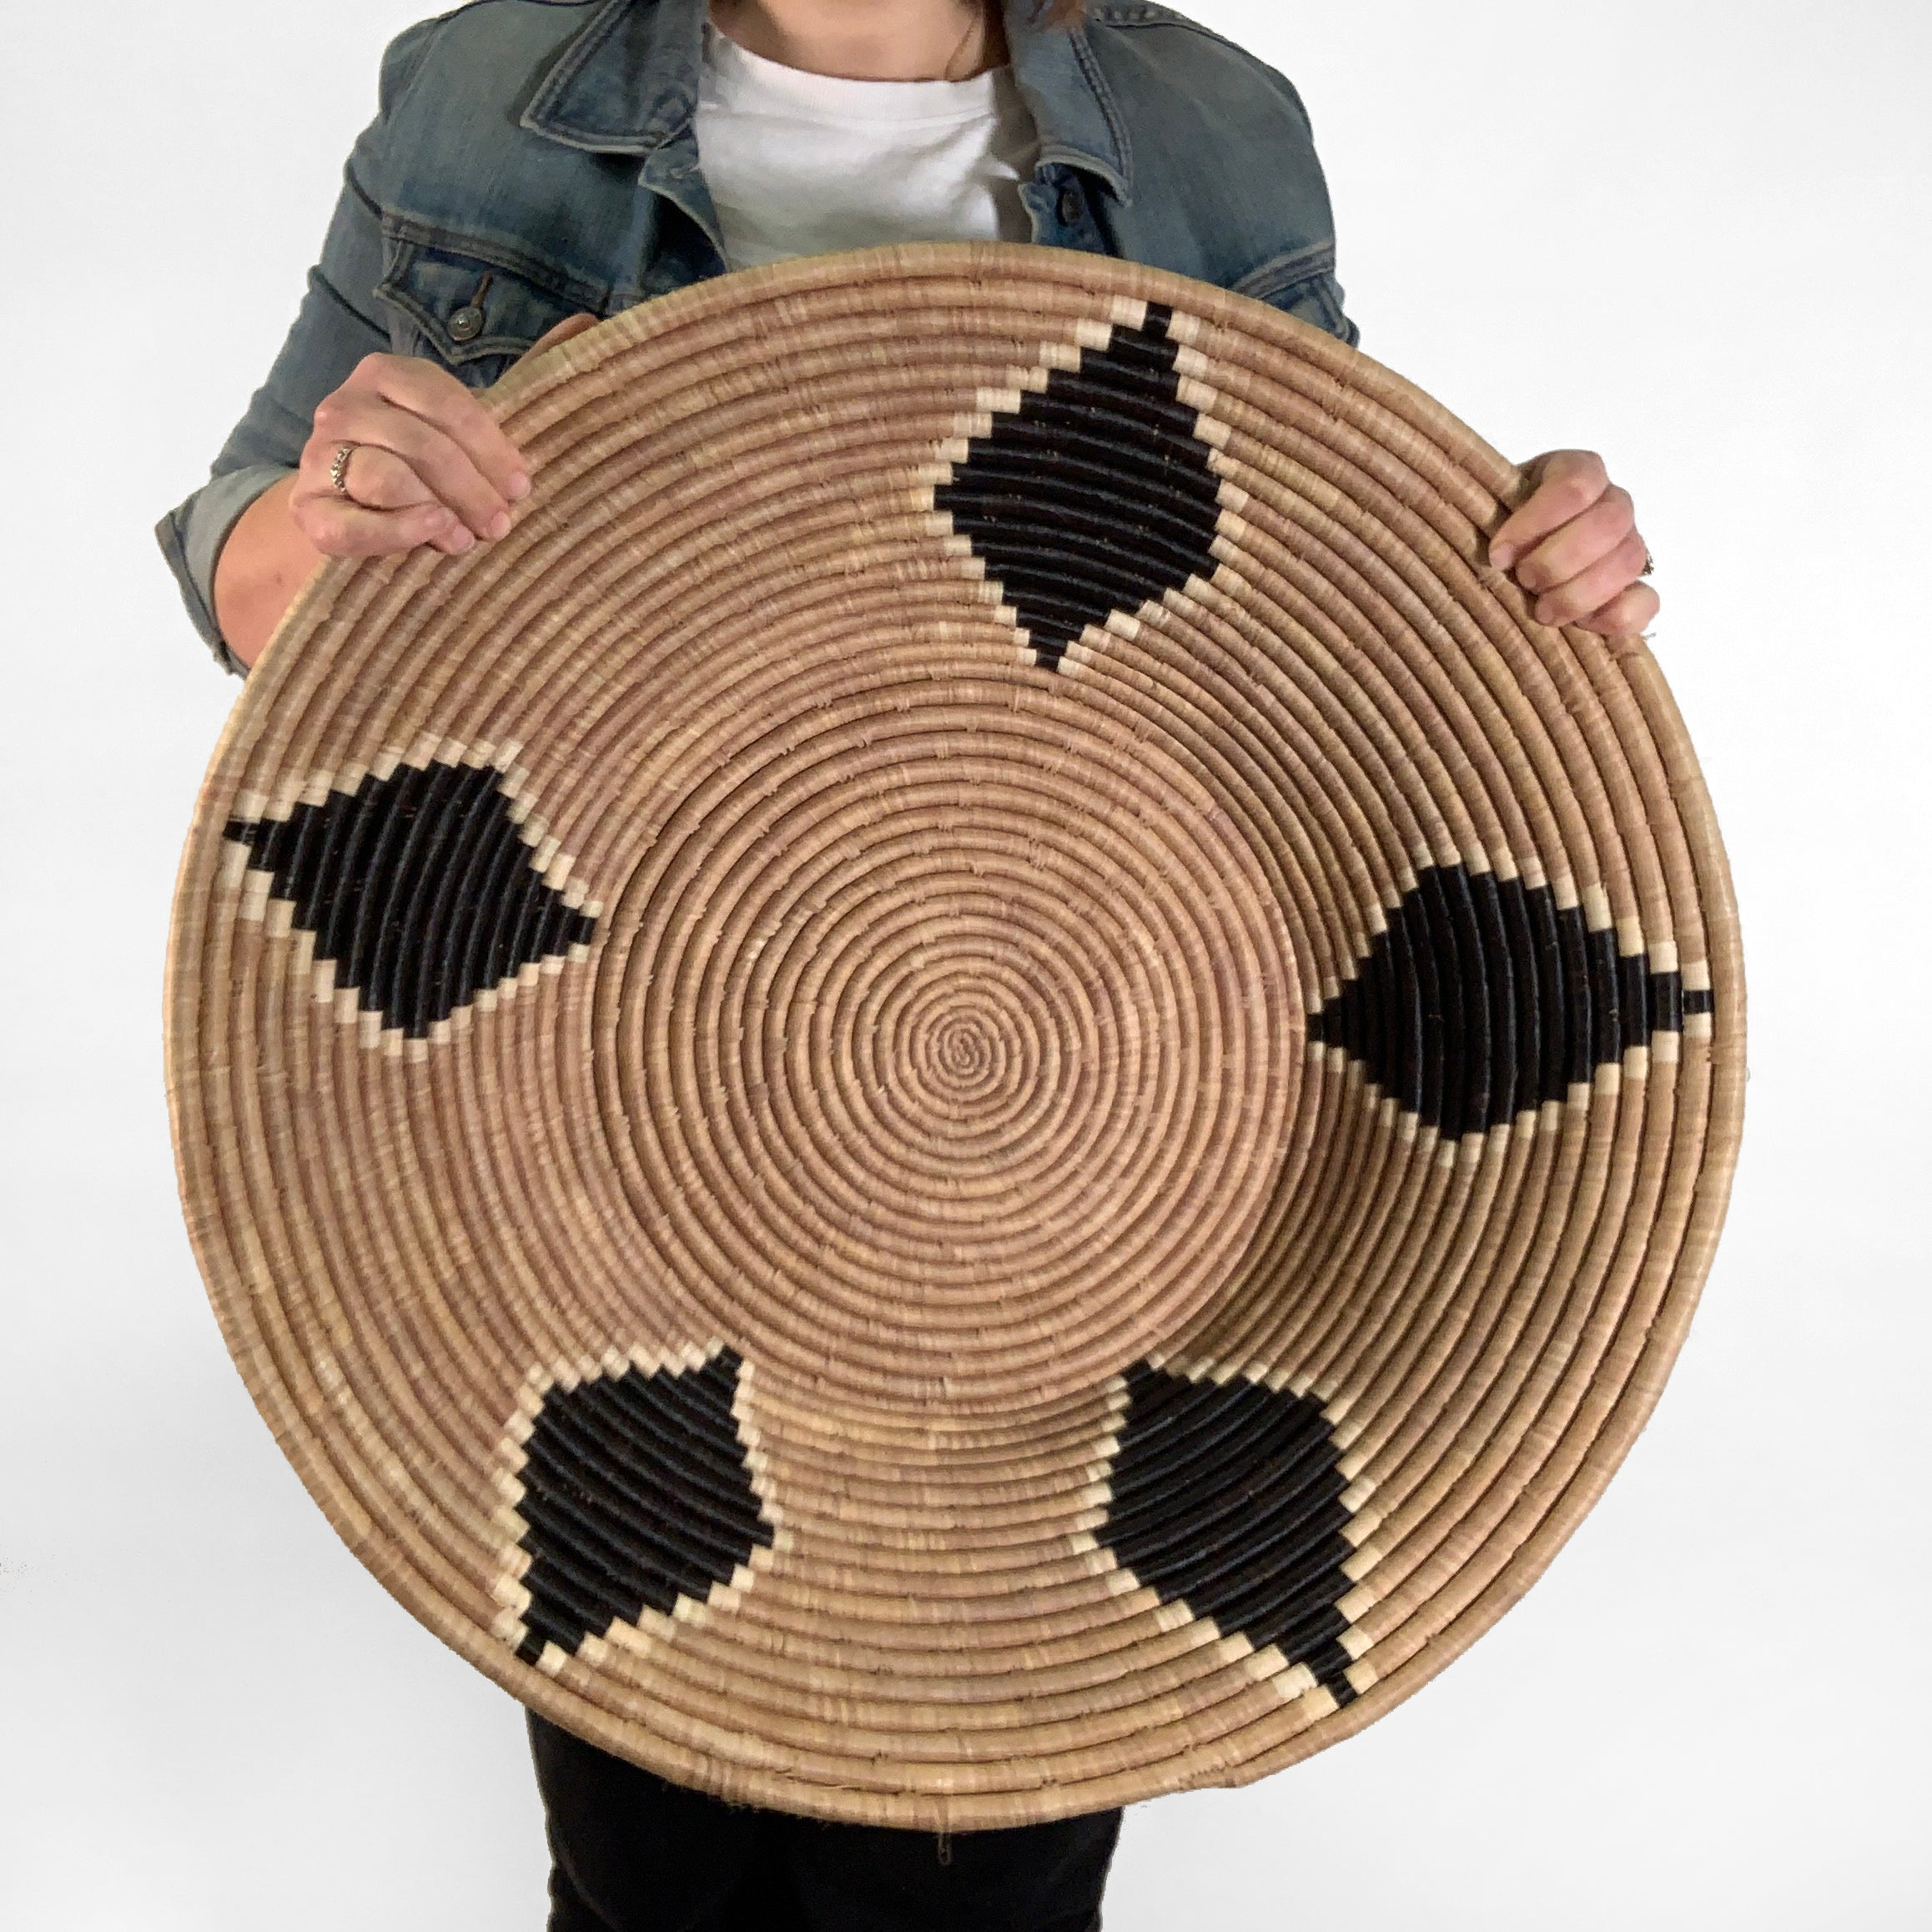 Black and tan handwoven basket